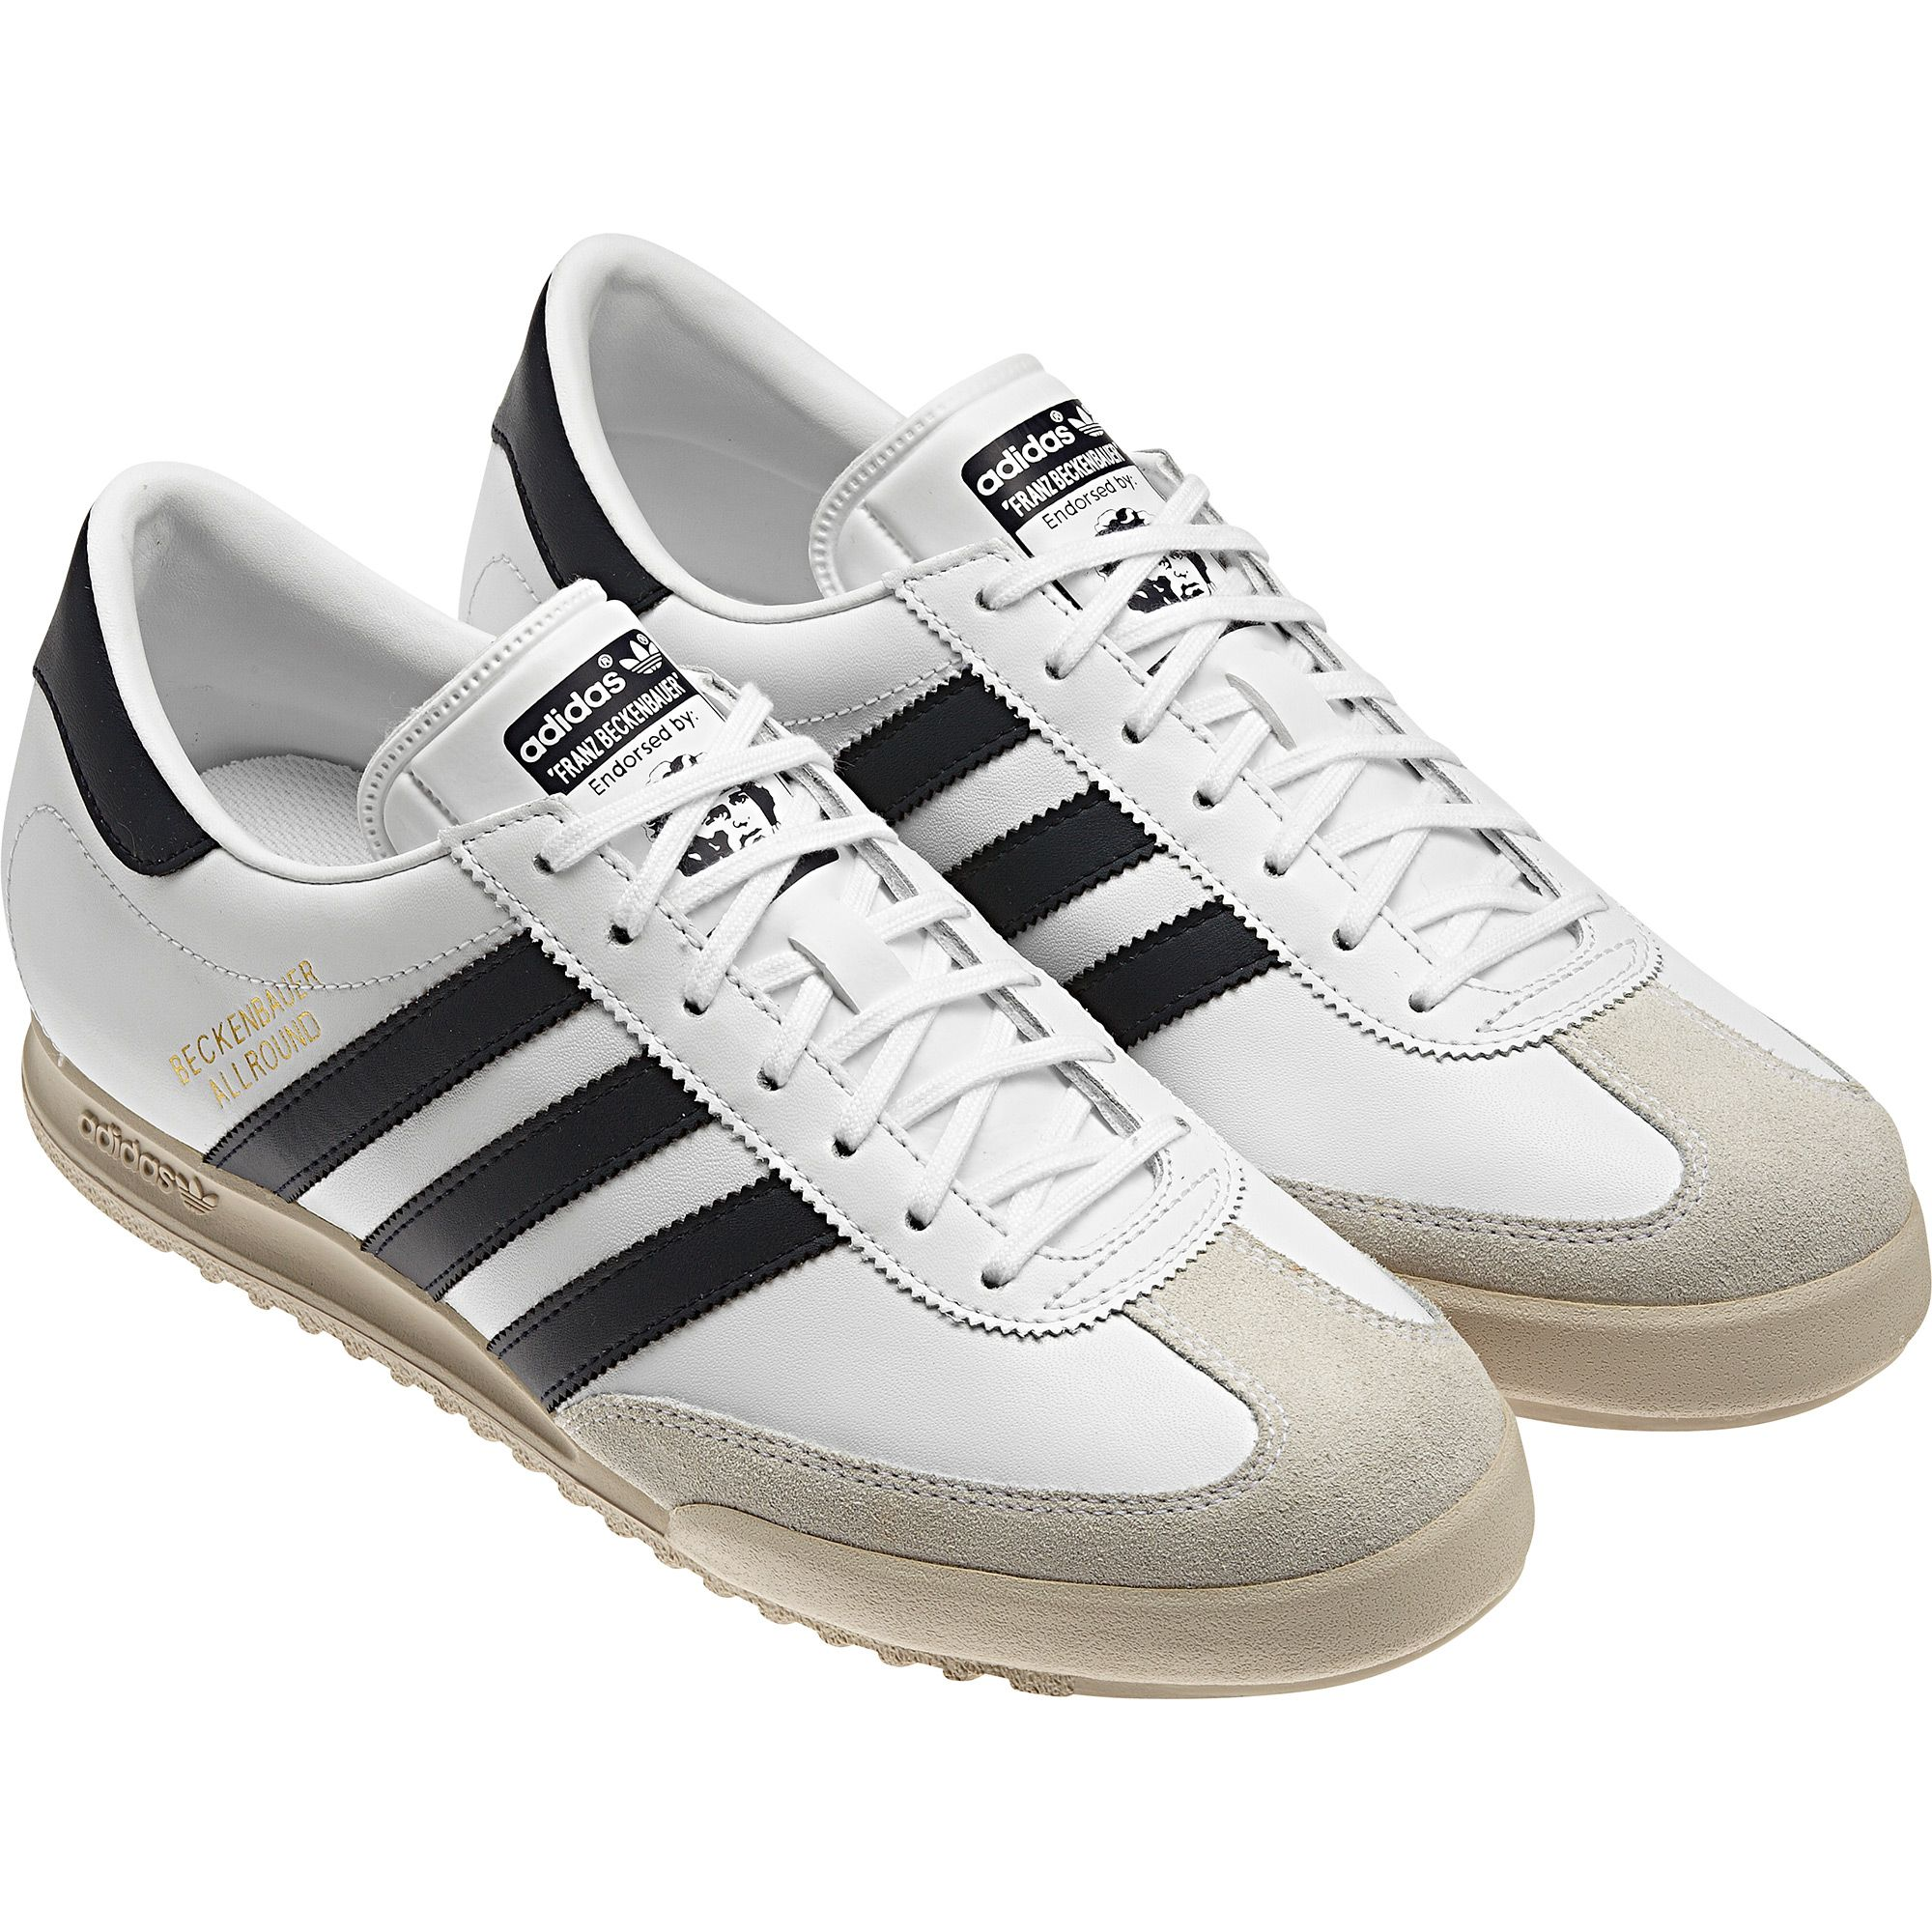 The Beautiful Gear » The Beckenbauer Allround by Adidas